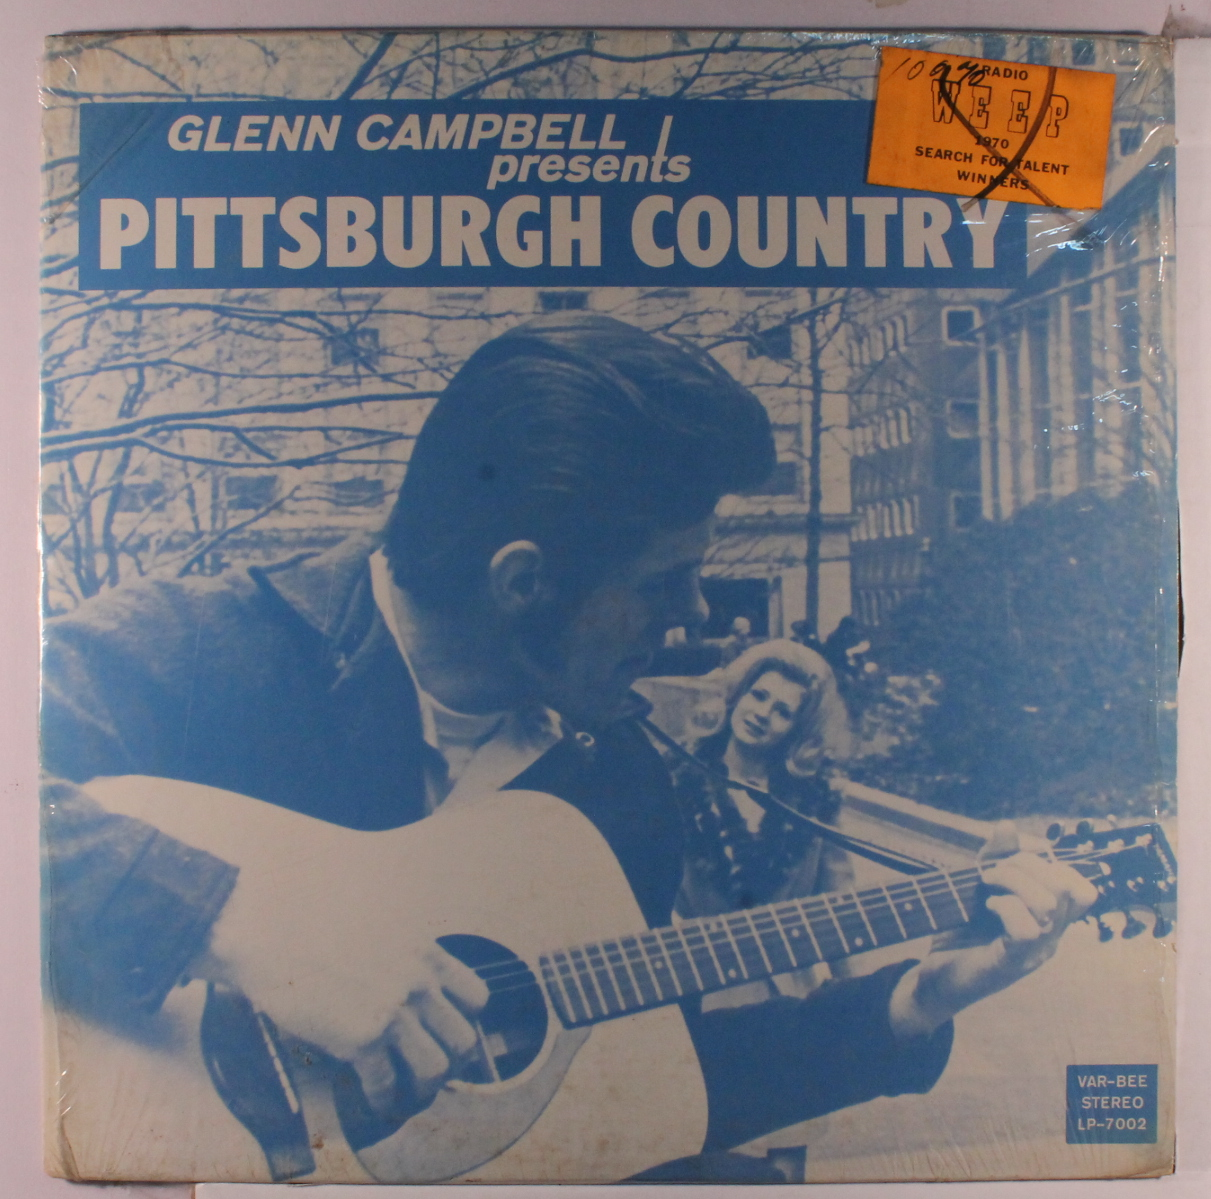 Glenn Campbell Presents Pittsburgh Country_front album cover.JPG